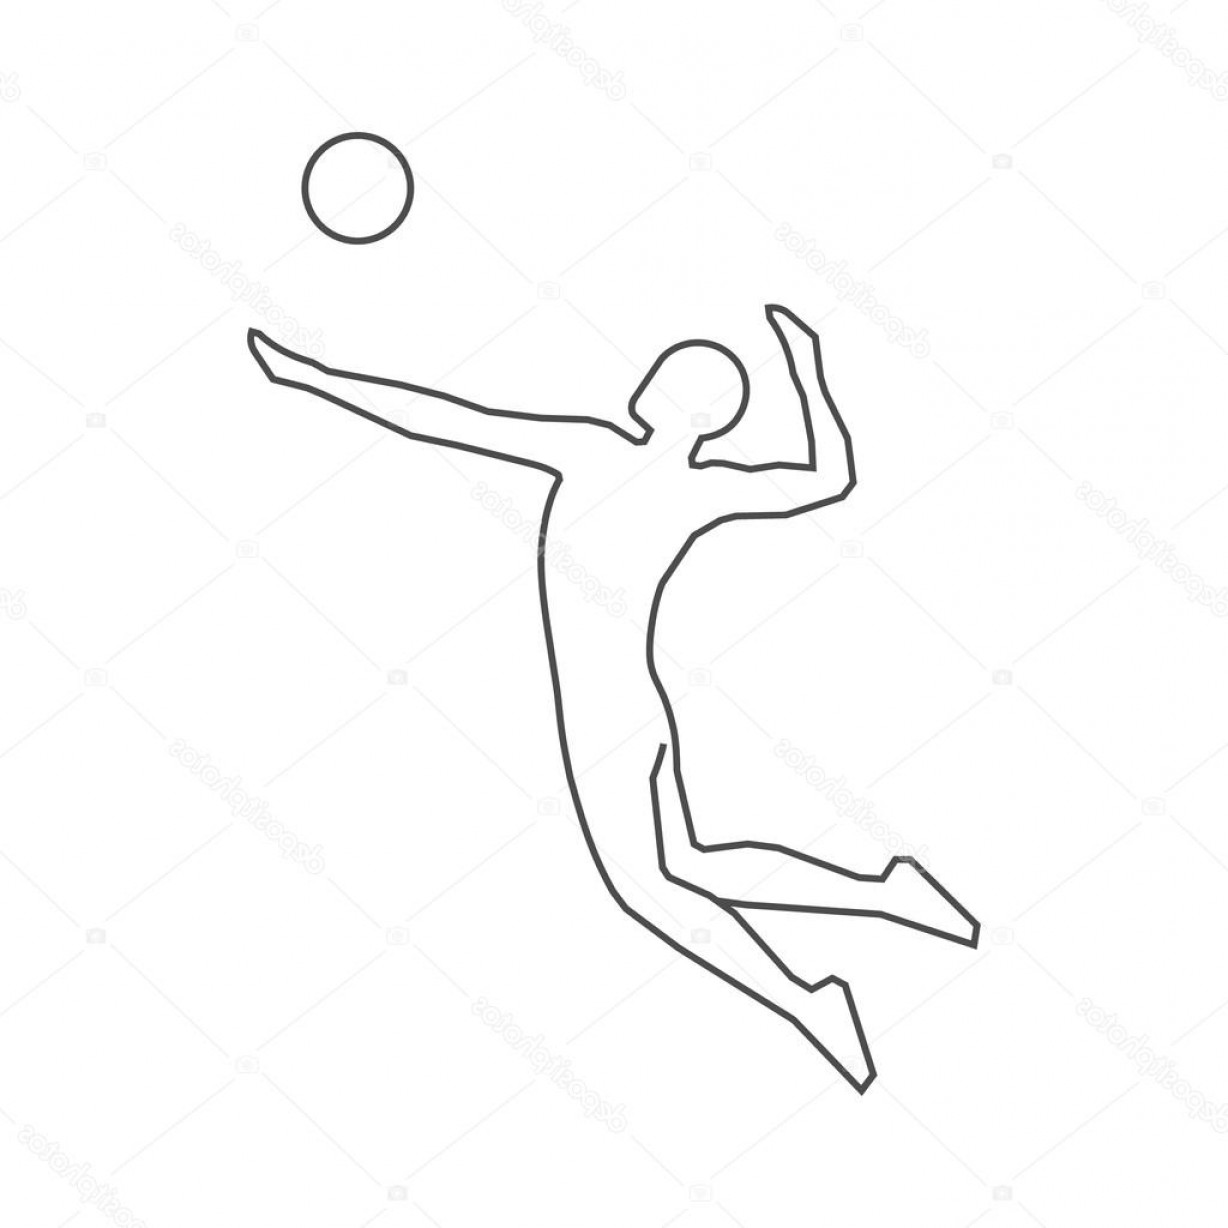 Volleyball Player Vector: Stock Illustration Volleyball Players Outline Silhouette